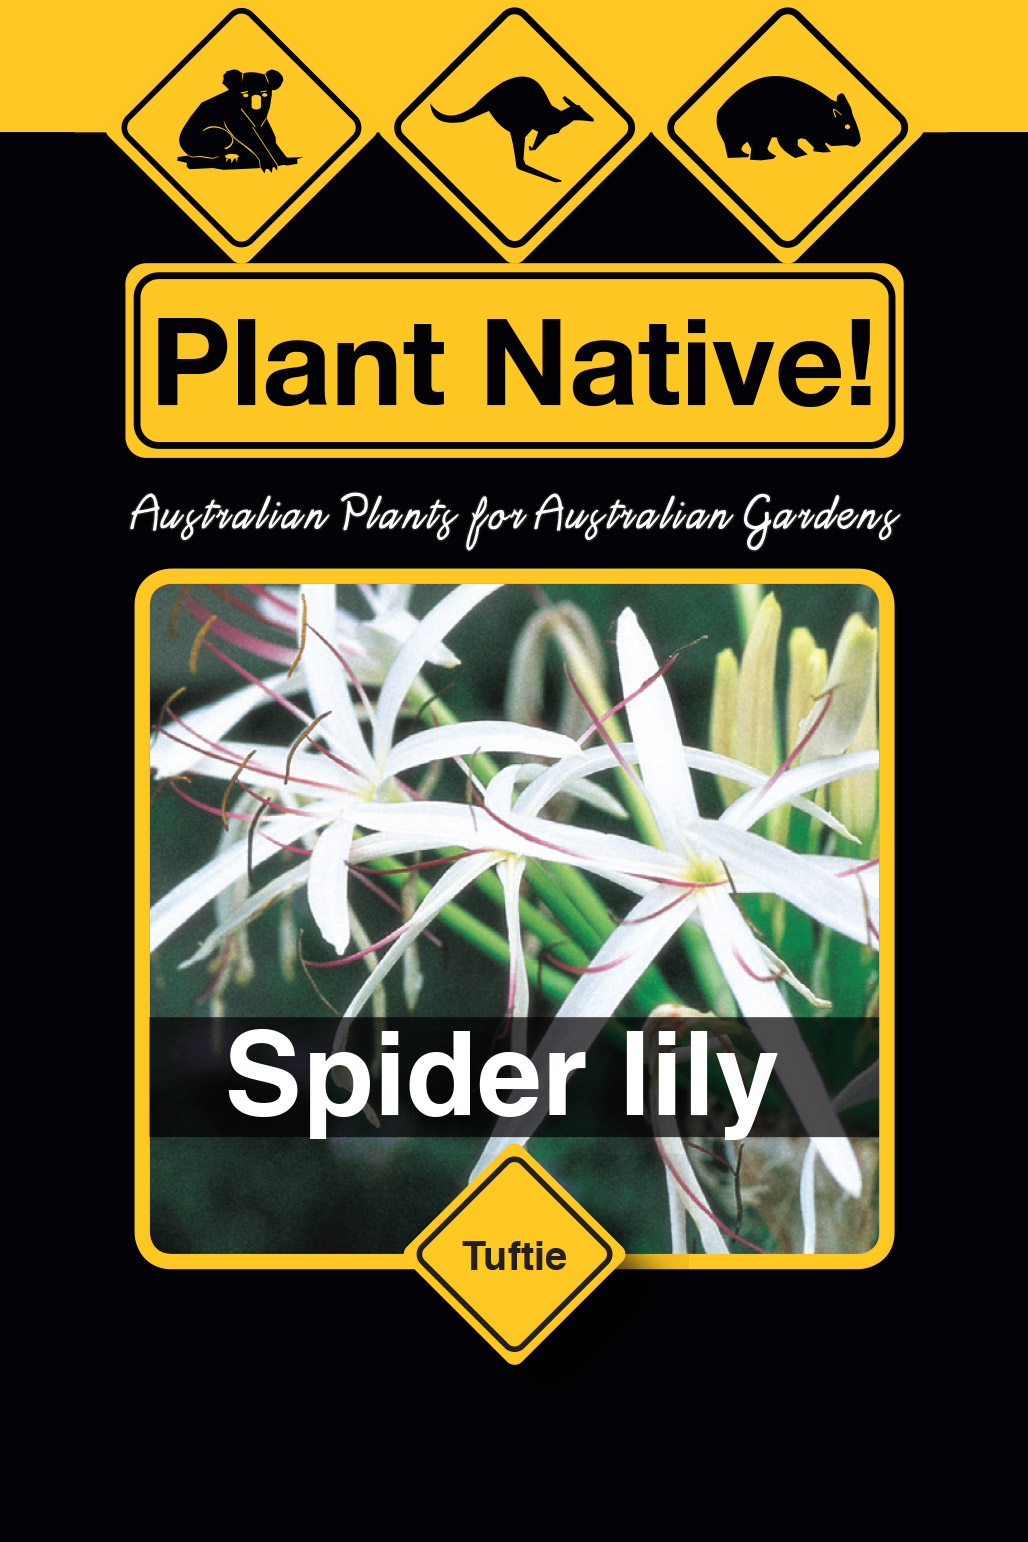 Spider lily - Plant Native!